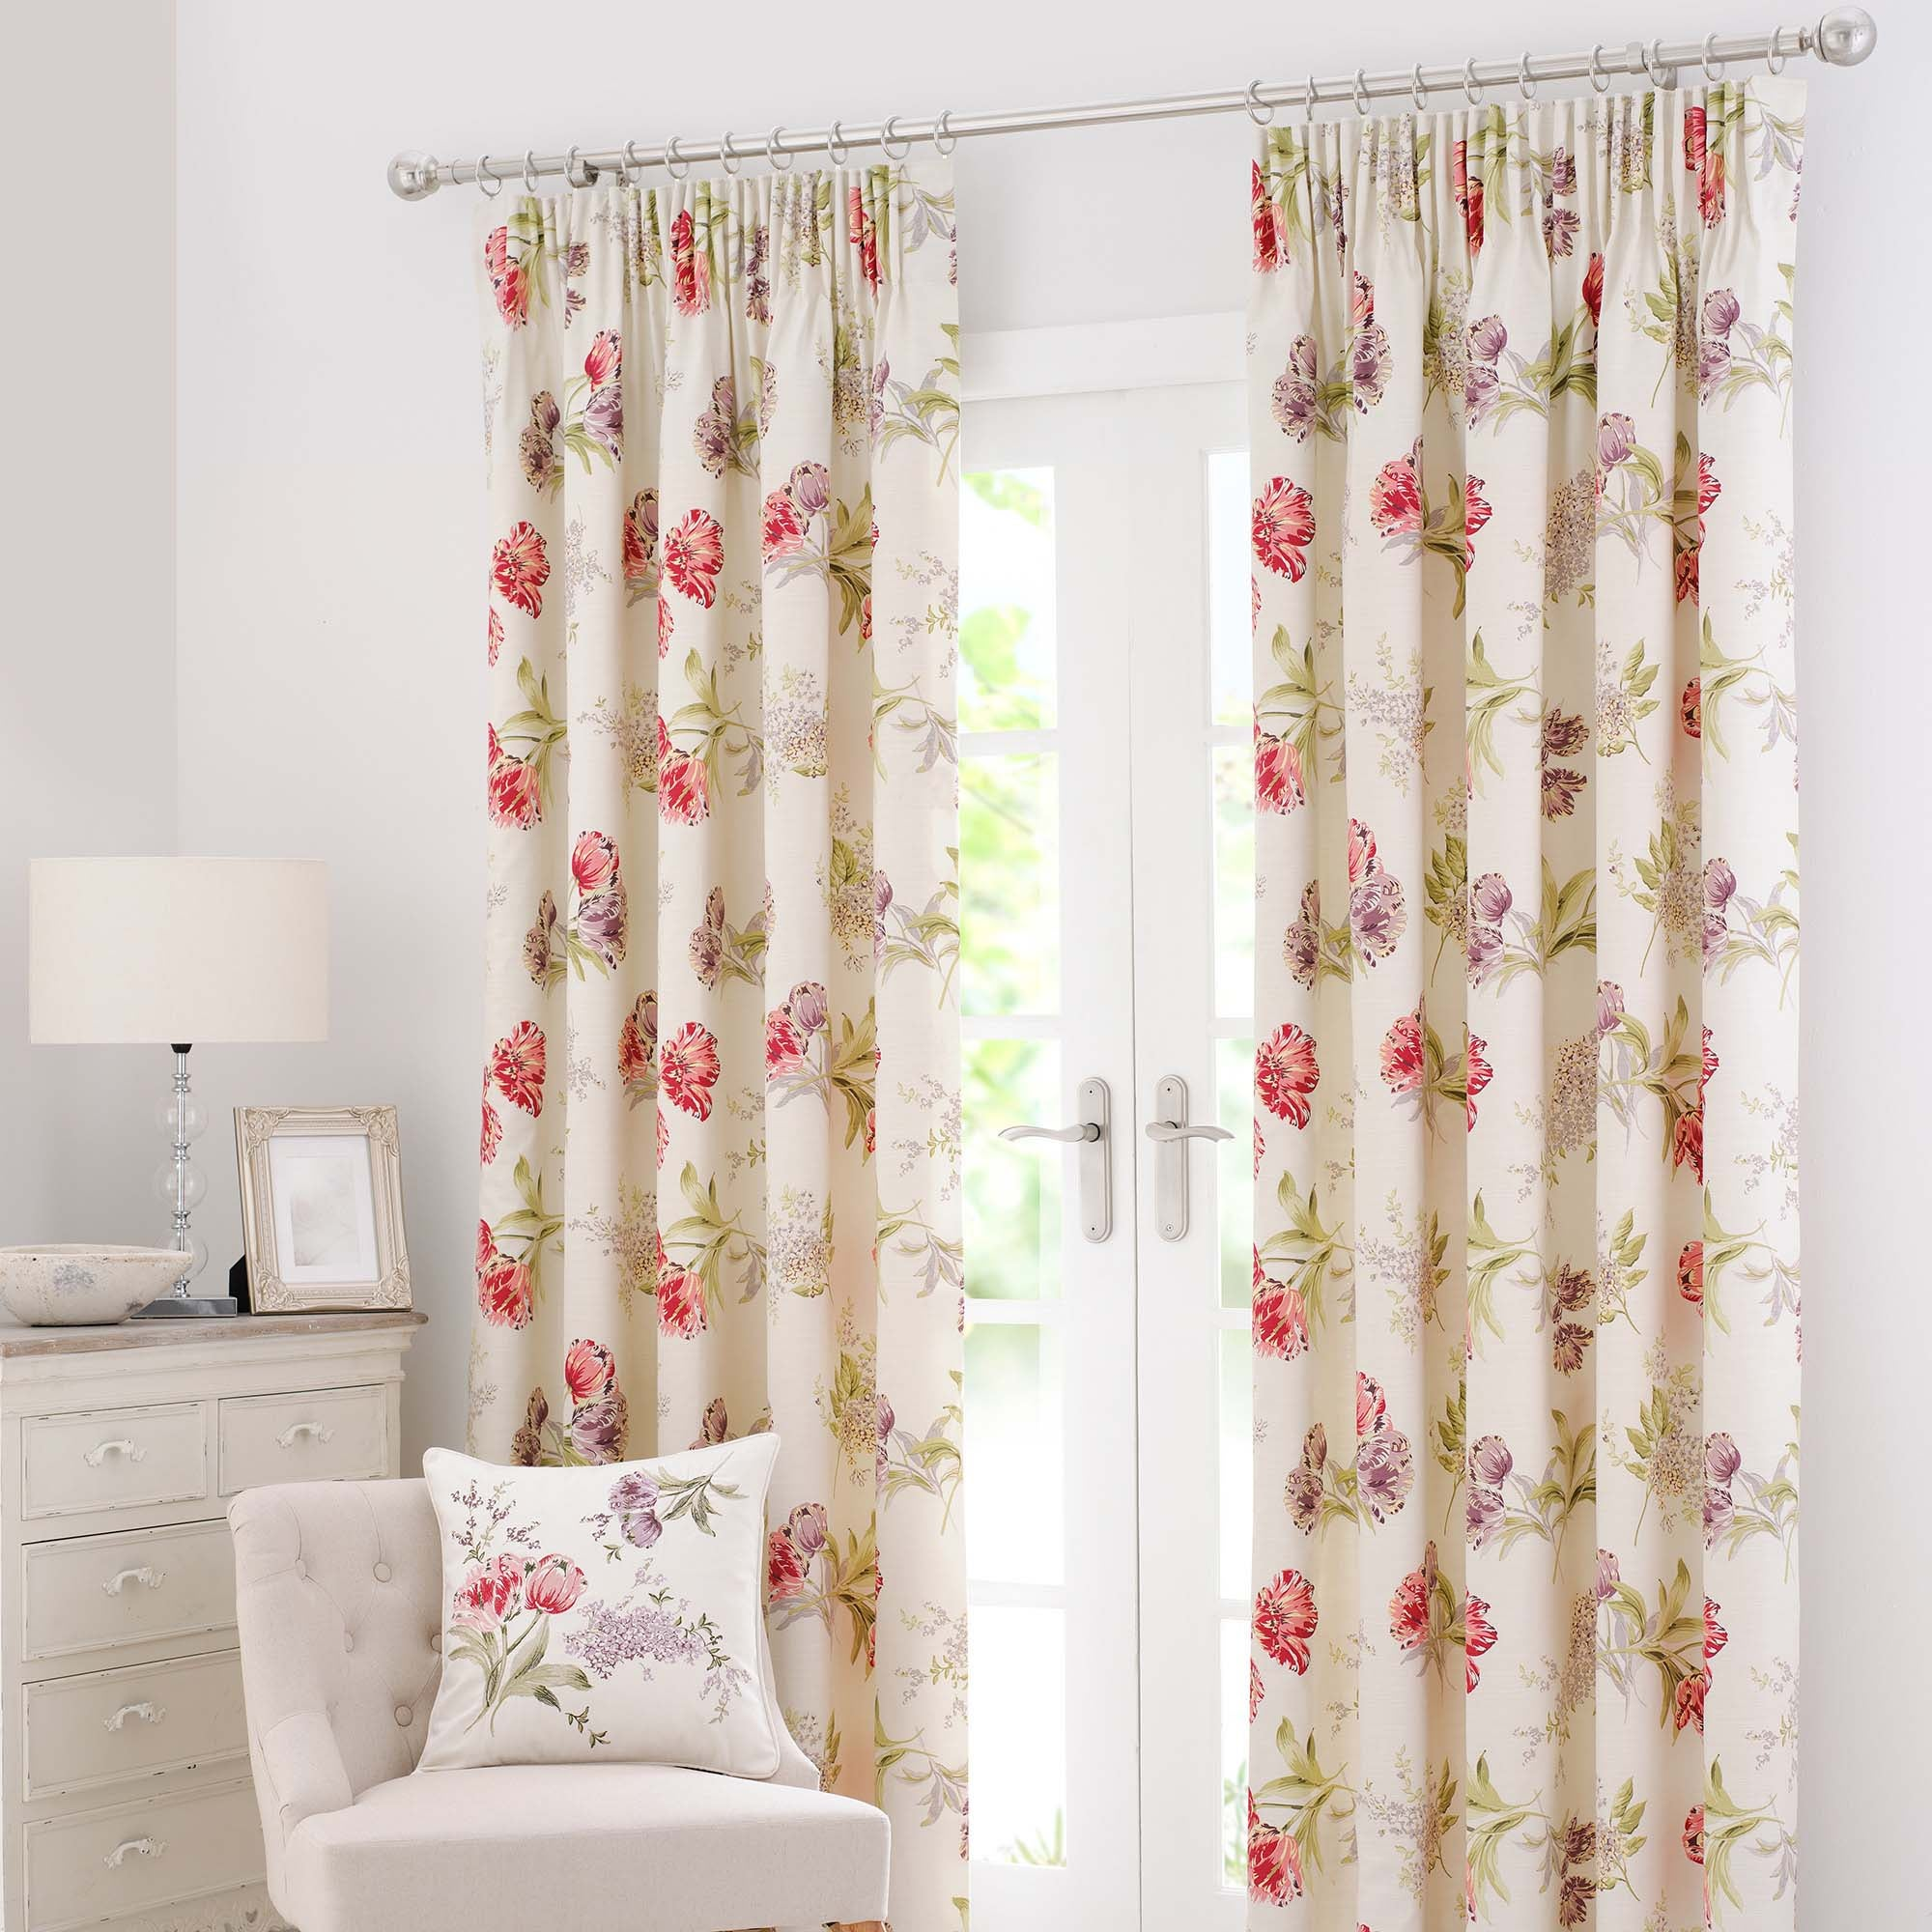 curtains lilac shop for cheap curtains blinds and save. Black Bedroom Furniture Sets. Home Design Ideas